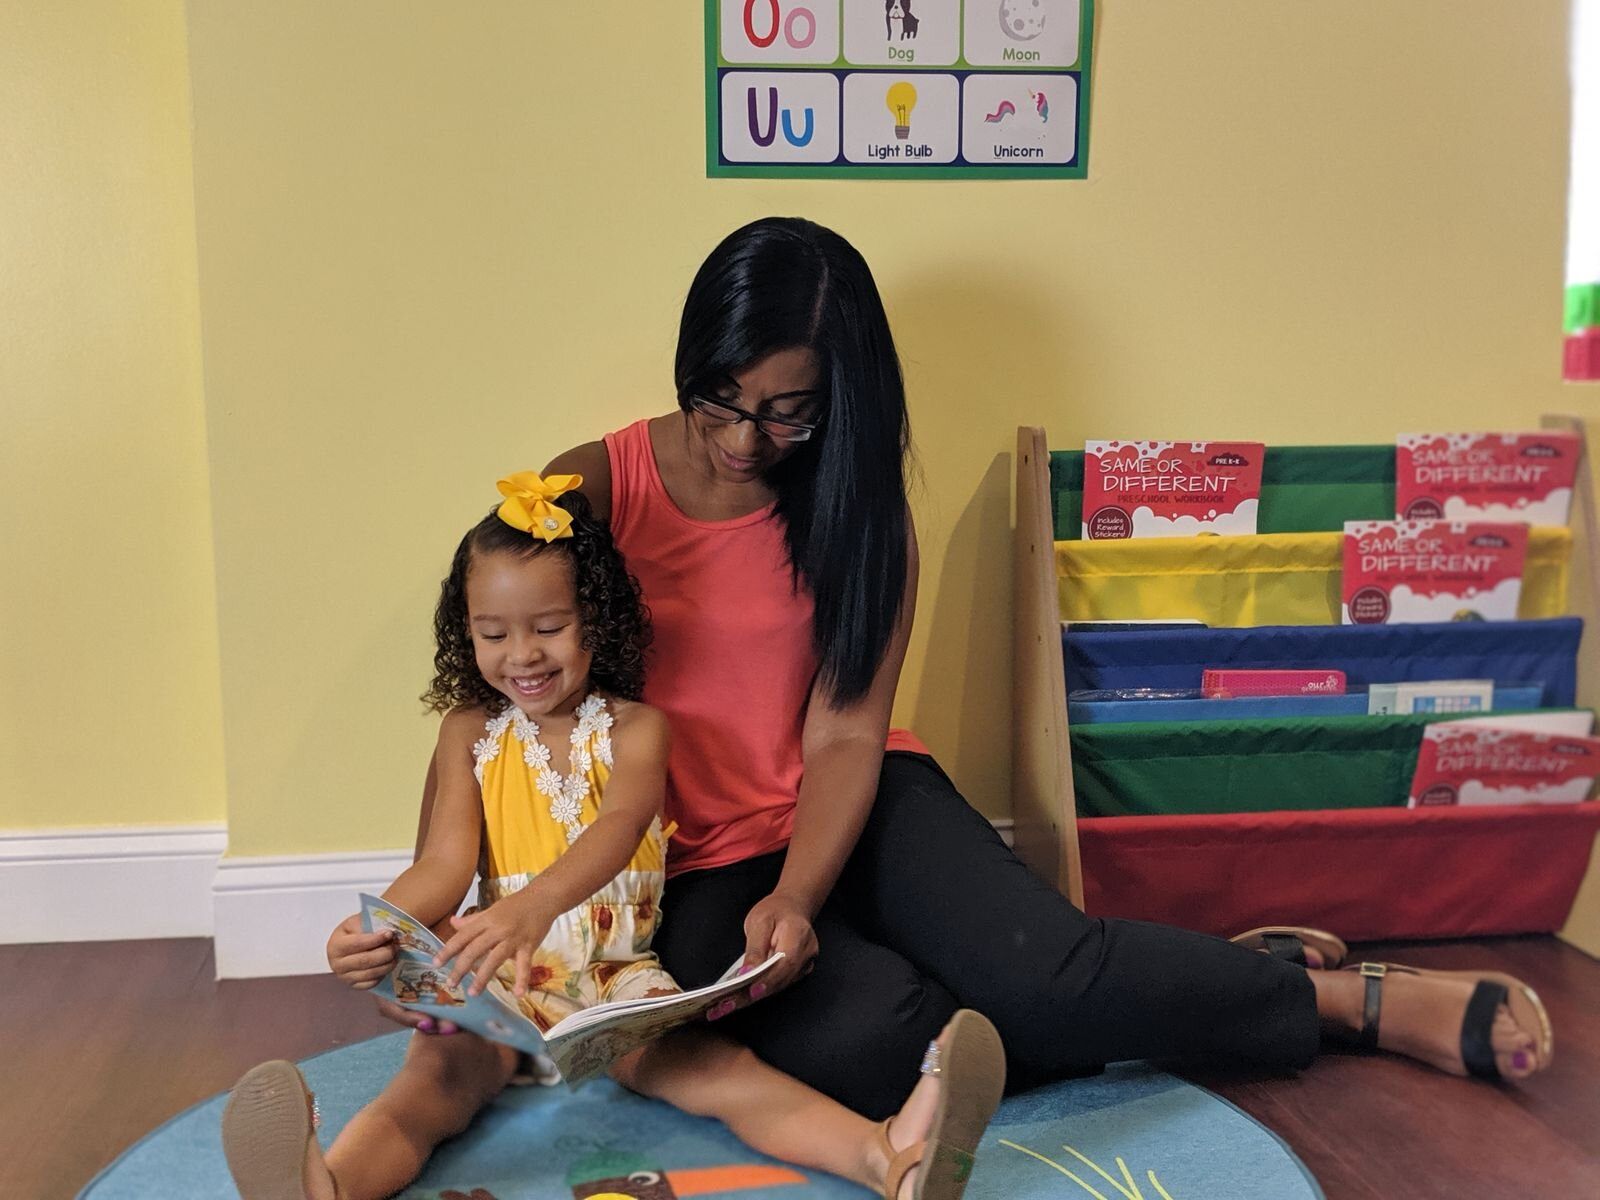 Ms. Jocie reads a book to a child at her daycare in Taunton, MA.